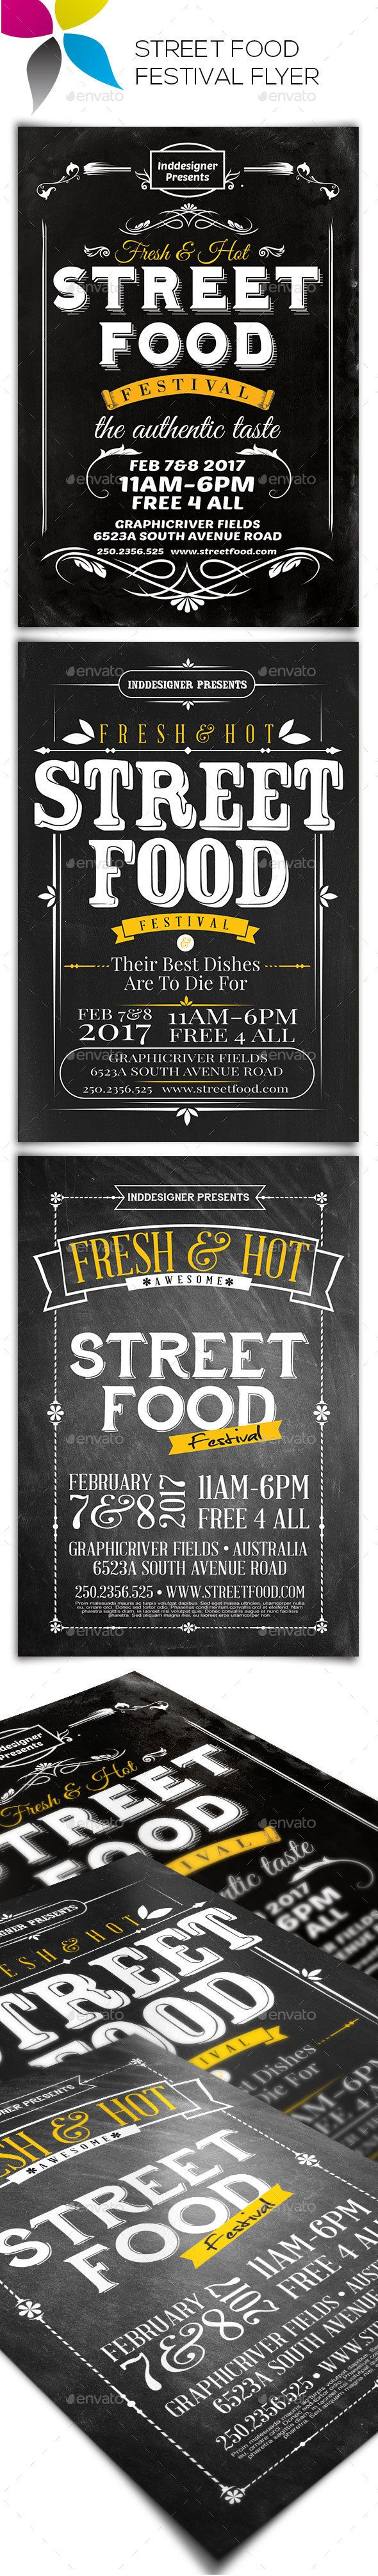 Street Food Festival Flyer - Commerce Flyers